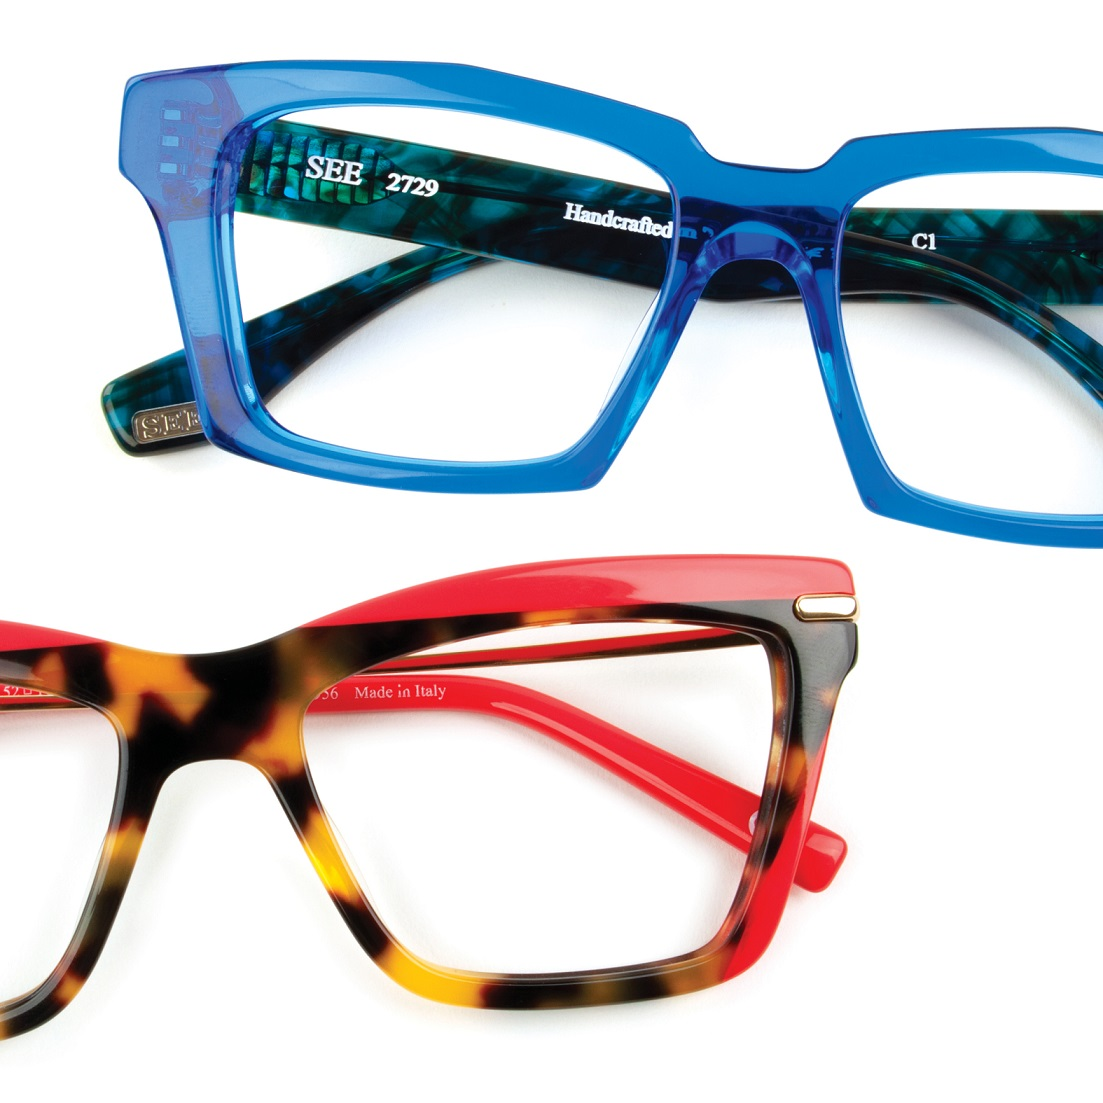 50% Off Lenses at SEE! from See Eyewear